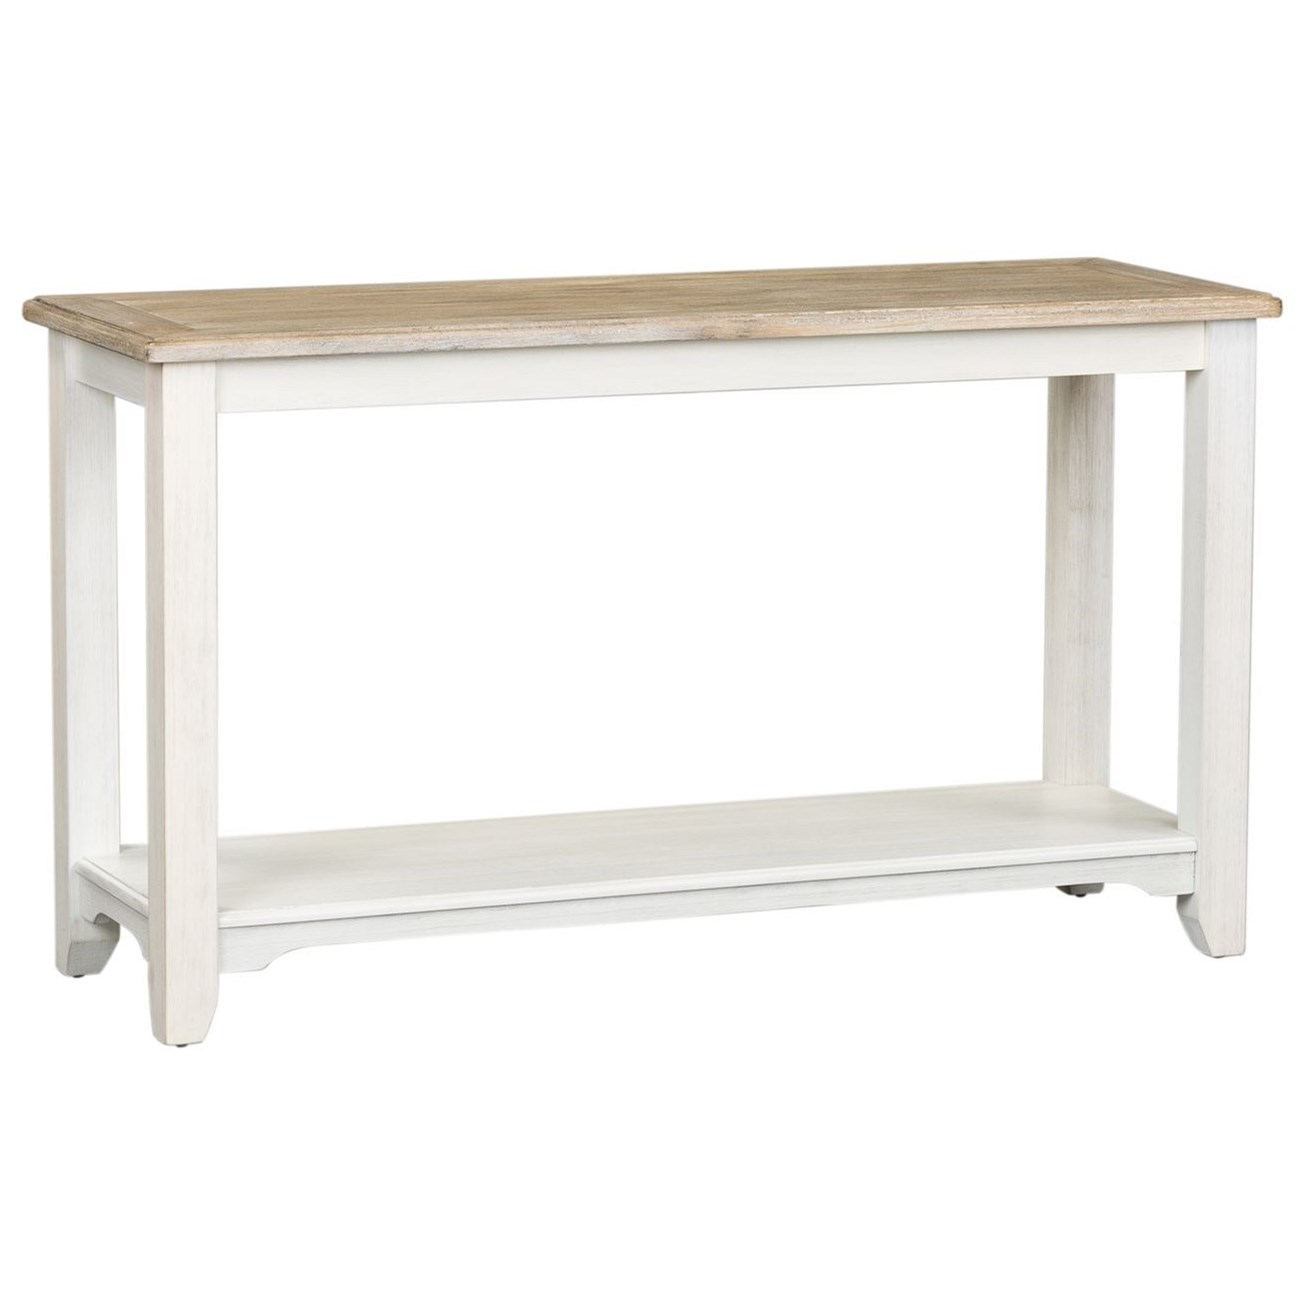 Summerville Sofa Table by Liberty Furniture at Darvin Furniture